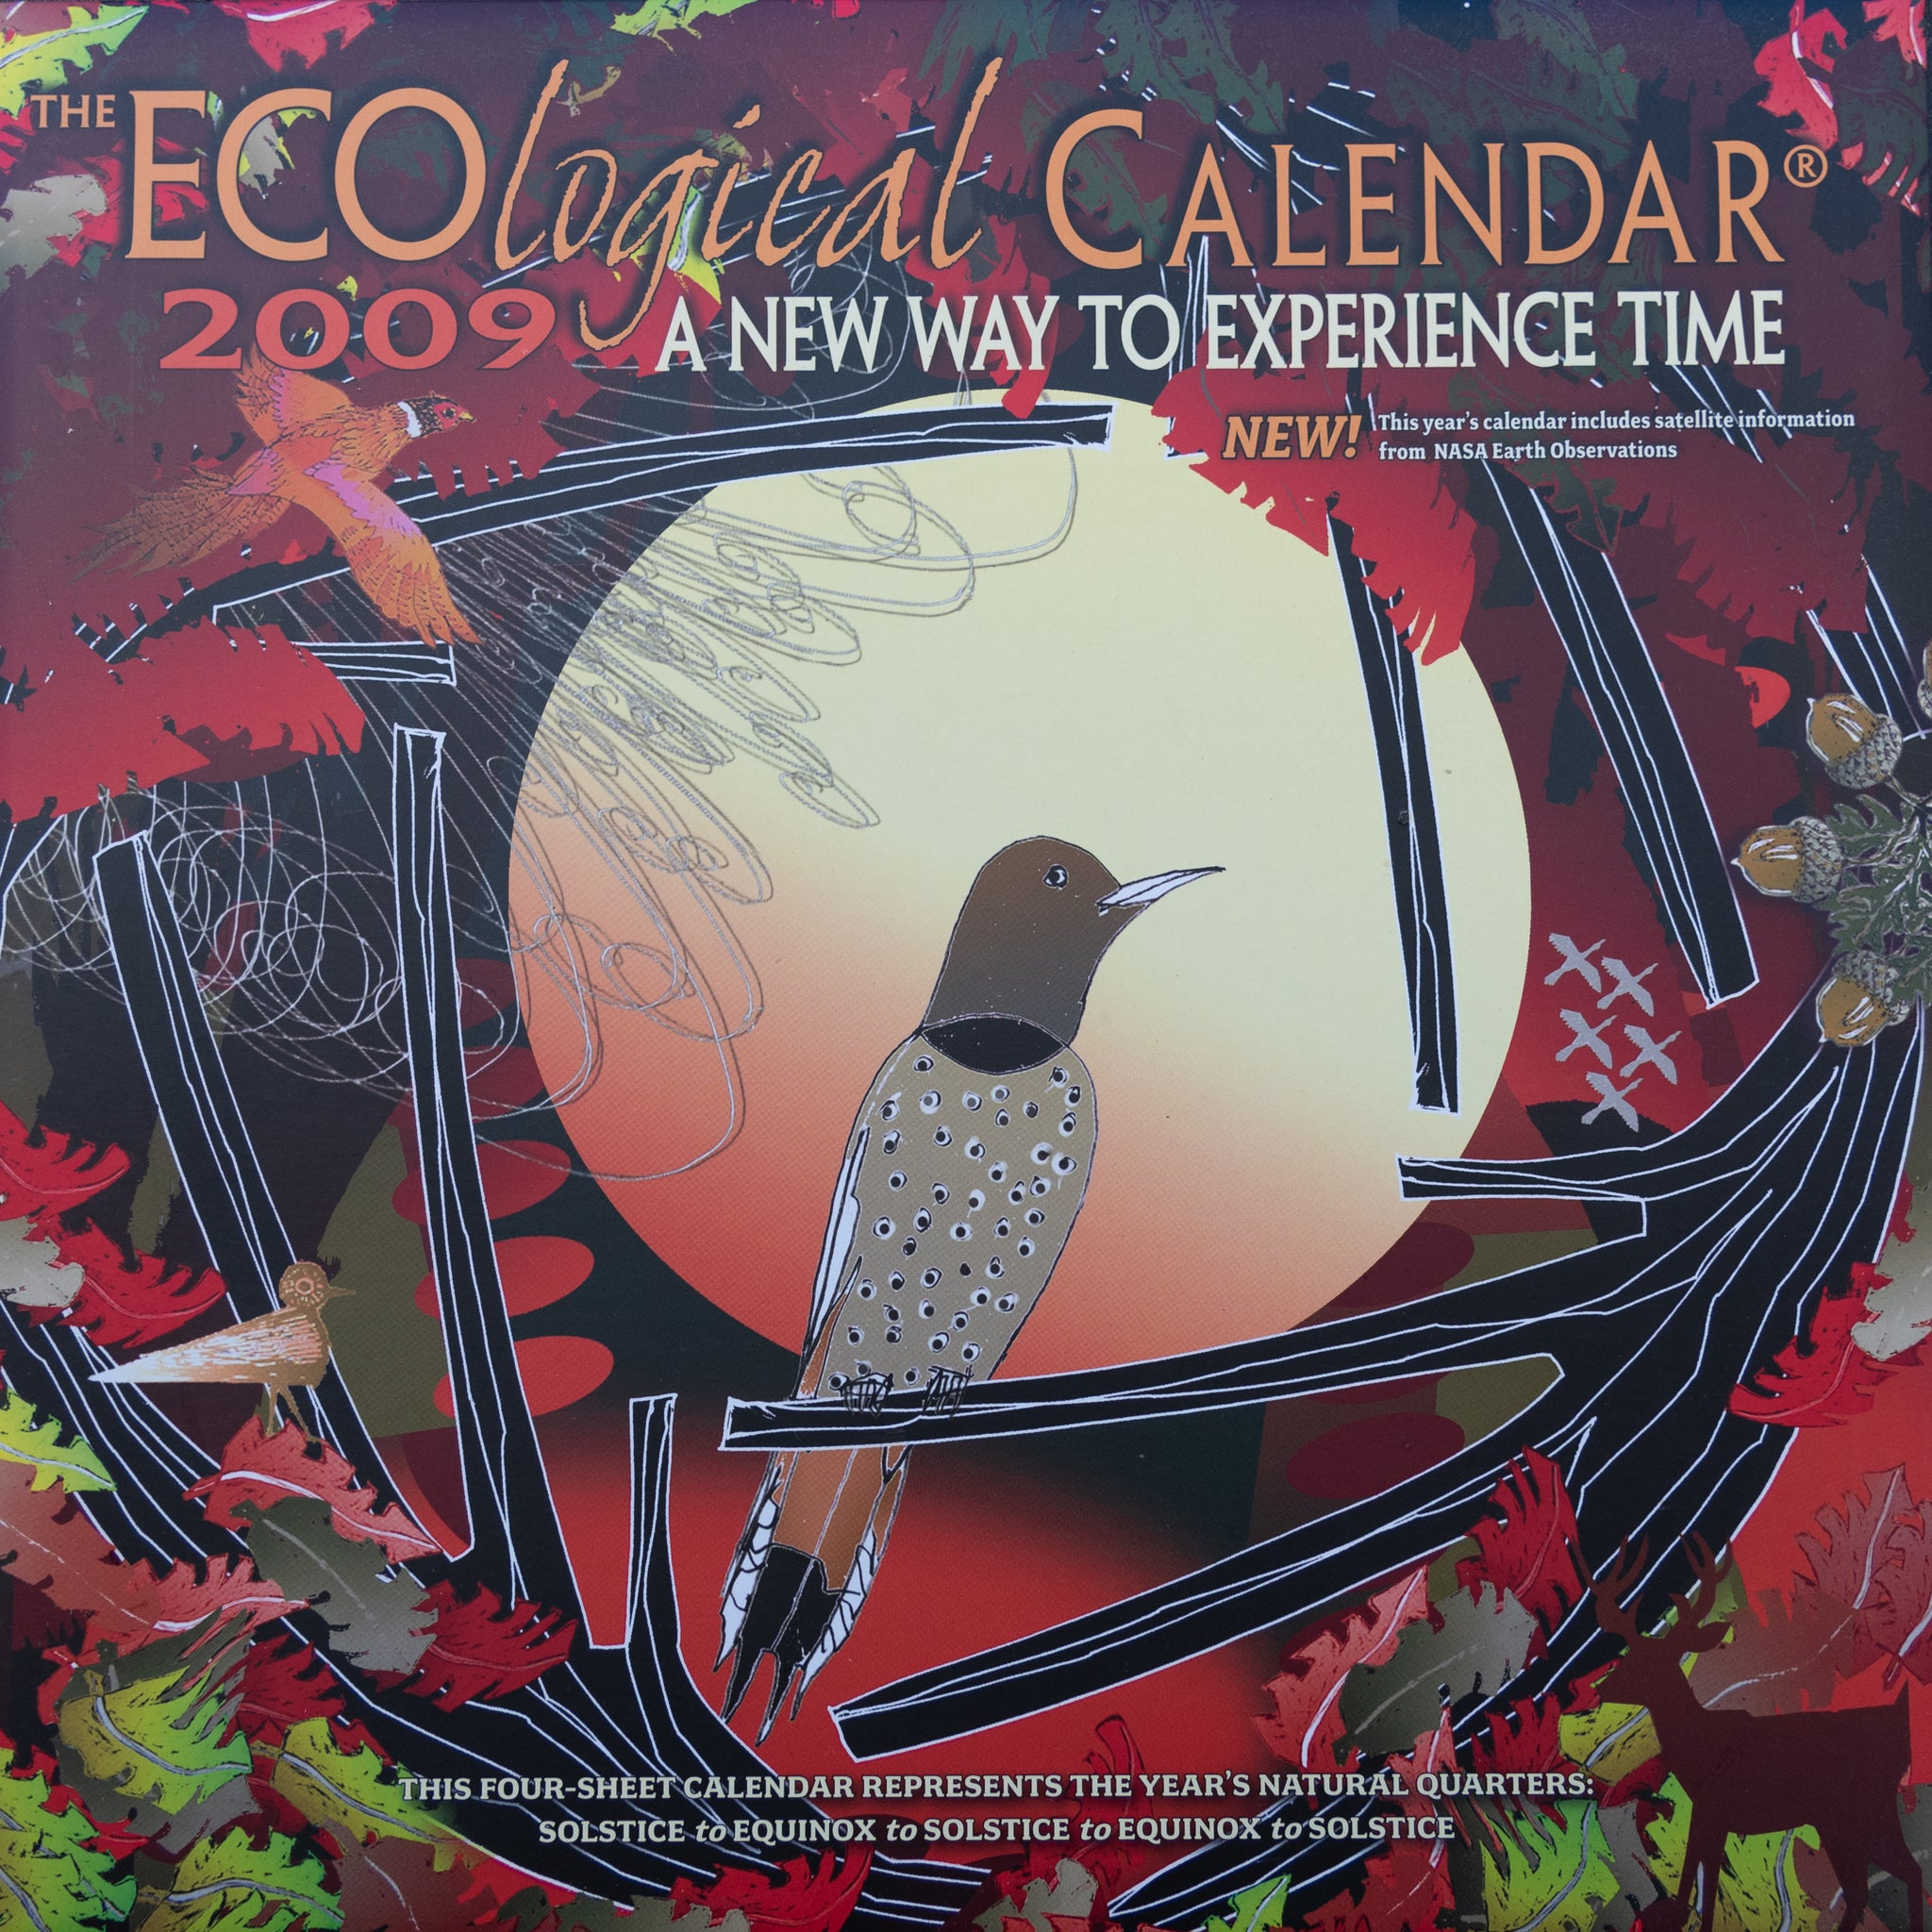 Complete set of All ECOlogical Calendars 2005 -2021, FREE SHIPPING ON SET